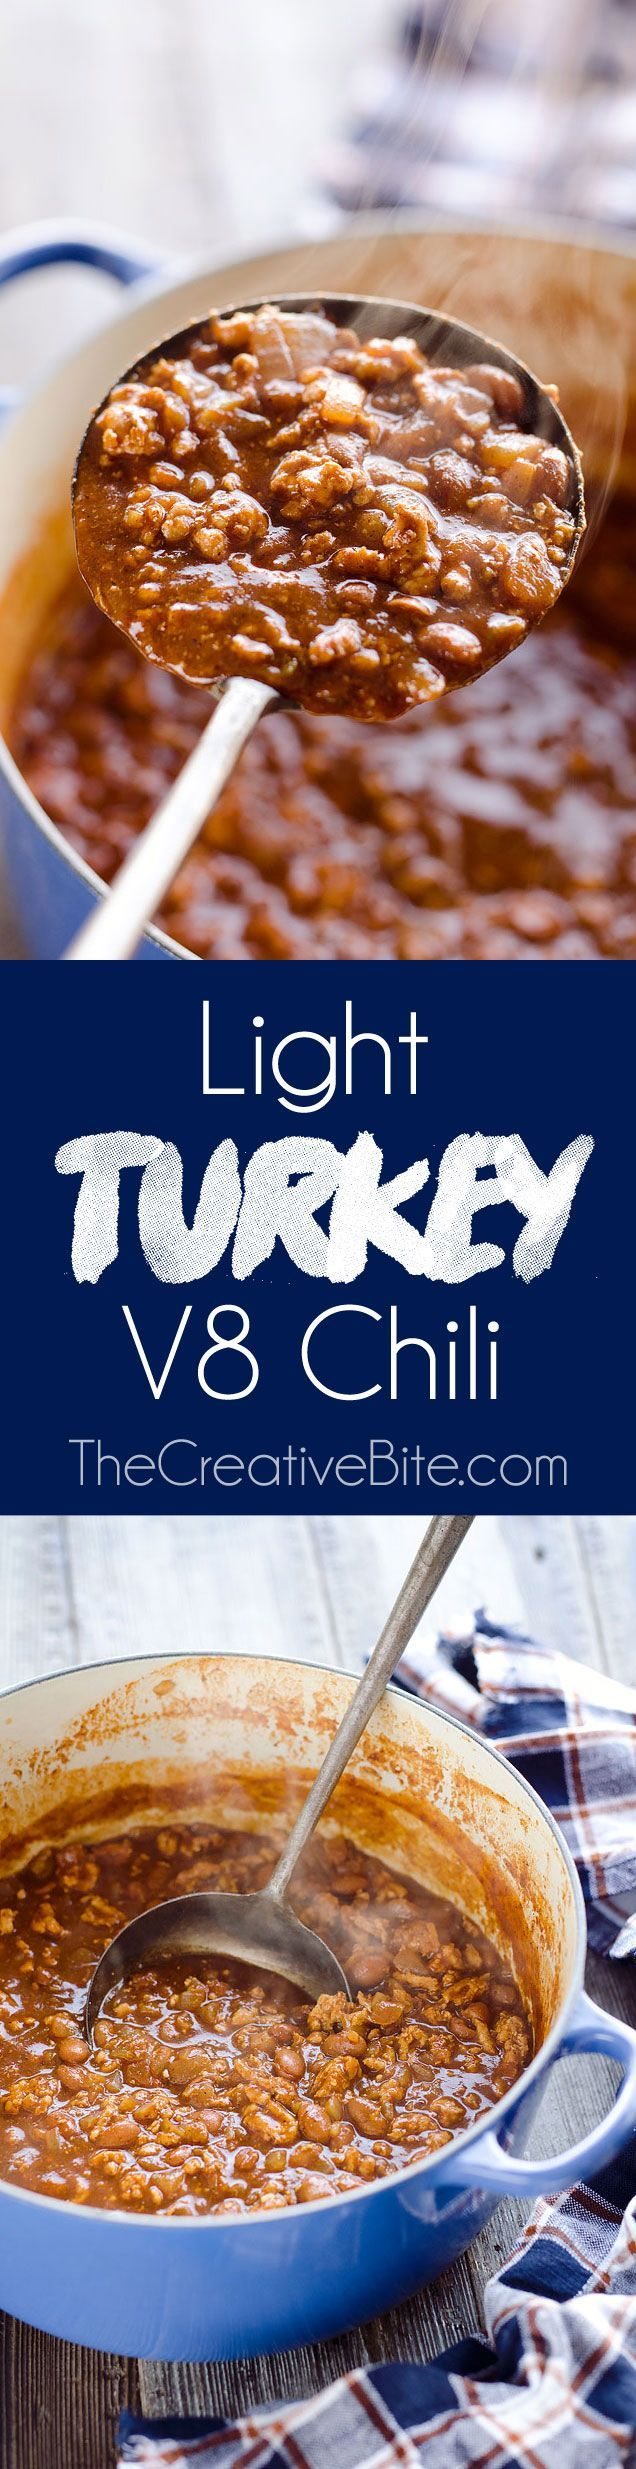 Light Turkey V8 Chili is an easy and healthy 20 minute weeknight dinner idea with only 6 ingredients and a whole lot of flavor. This dish is loaded with nutrition from V8 juice, lean ground turkey and beans for a hearty meal the whole family will love. An added bonus - the leftovers are freezer friendly! #FreezerFriendly #Turkey #Soup